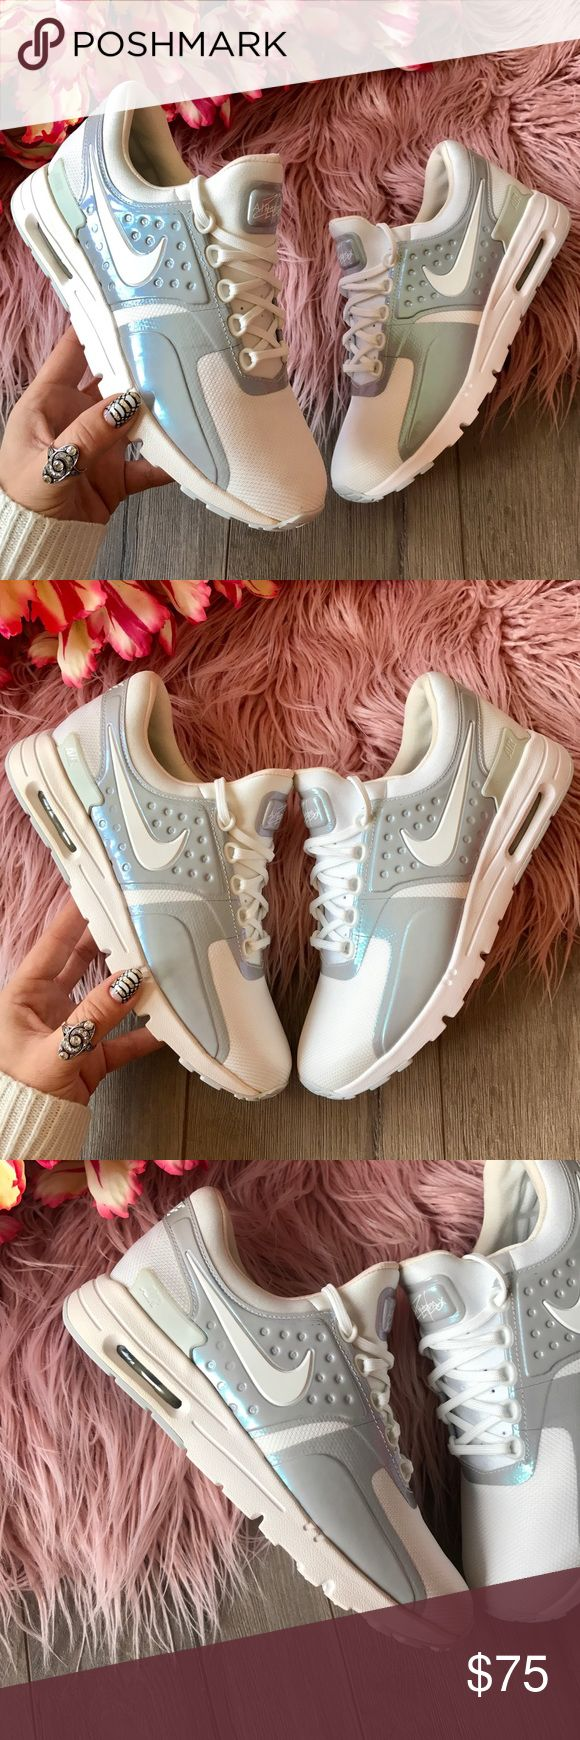 NWT Nike Air Max Zero pearl rare!! Worn once, like new condition, no box!price is firm!!no trades!!Designed in 1985 but un-released until 2015, the Nike Air Max Zero Women's Shoe is an Air Max 1 pre-concept design that combines a sleek upper and lightweig